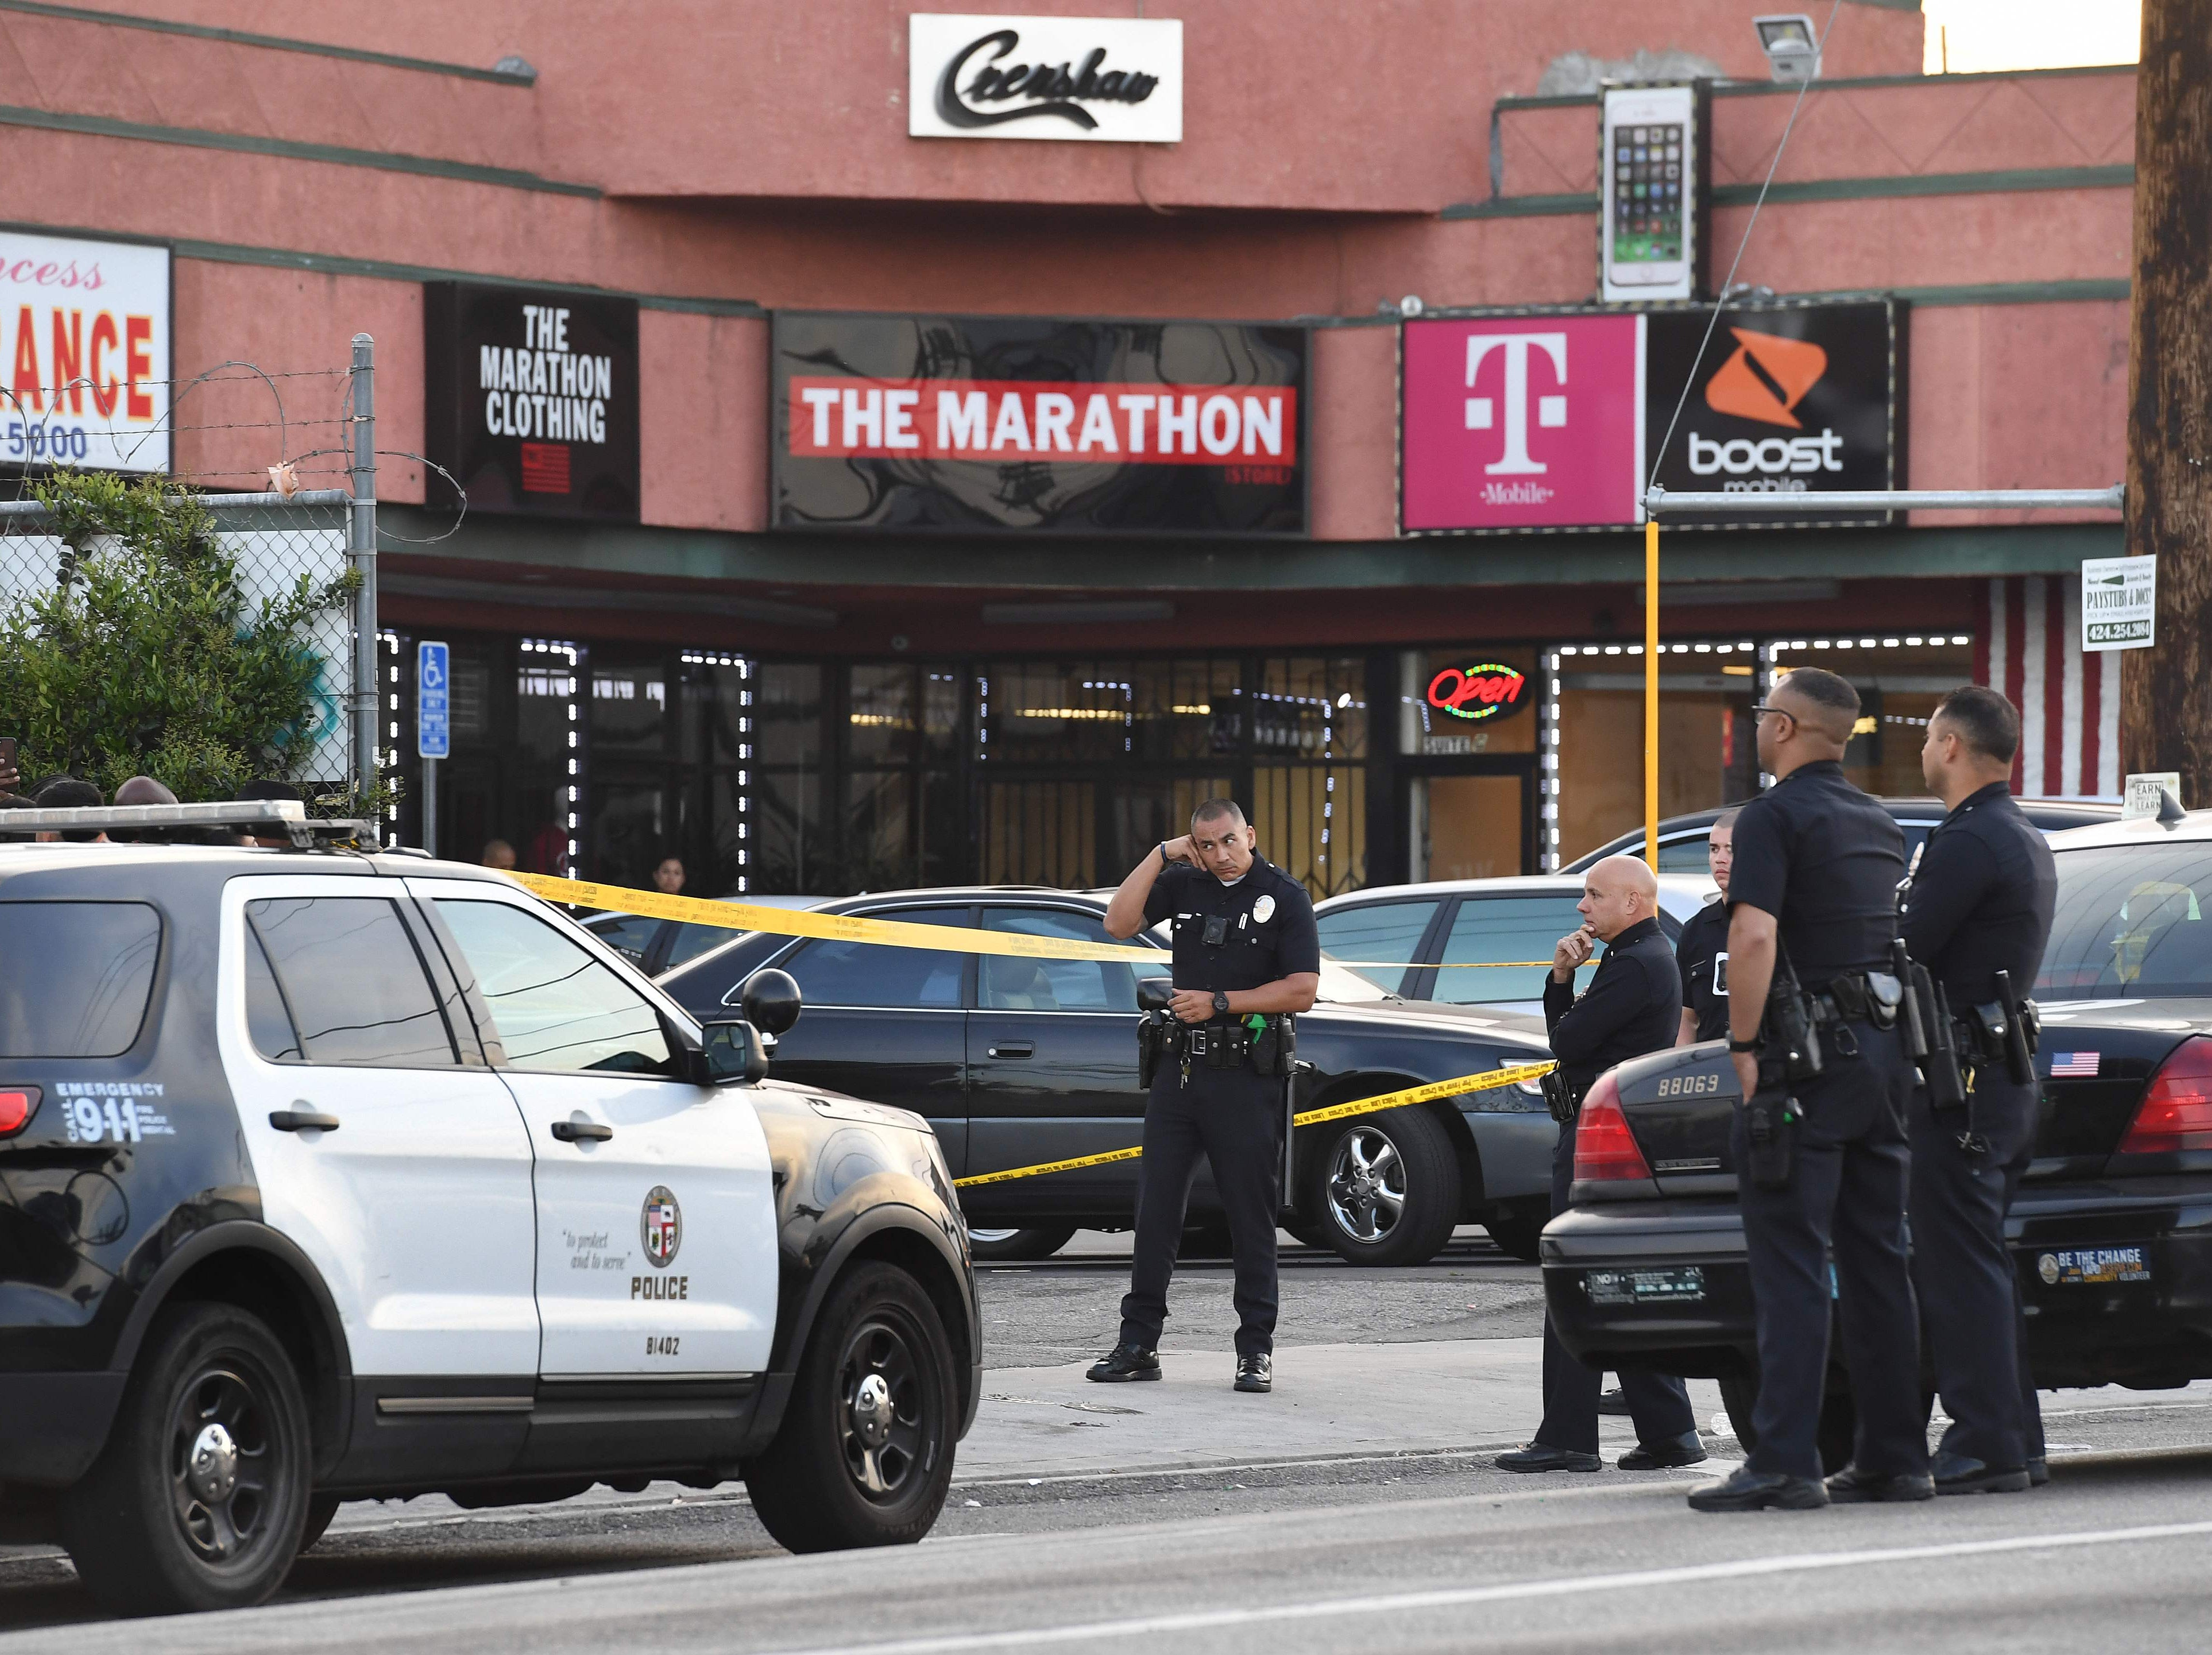 Police stand outside The Marathon clothing store owned by Grammy-nominated rapper Nipsey Hussle where he was fatally shot along with 2 other wounded, in Los Angeles on March 31, 2019.